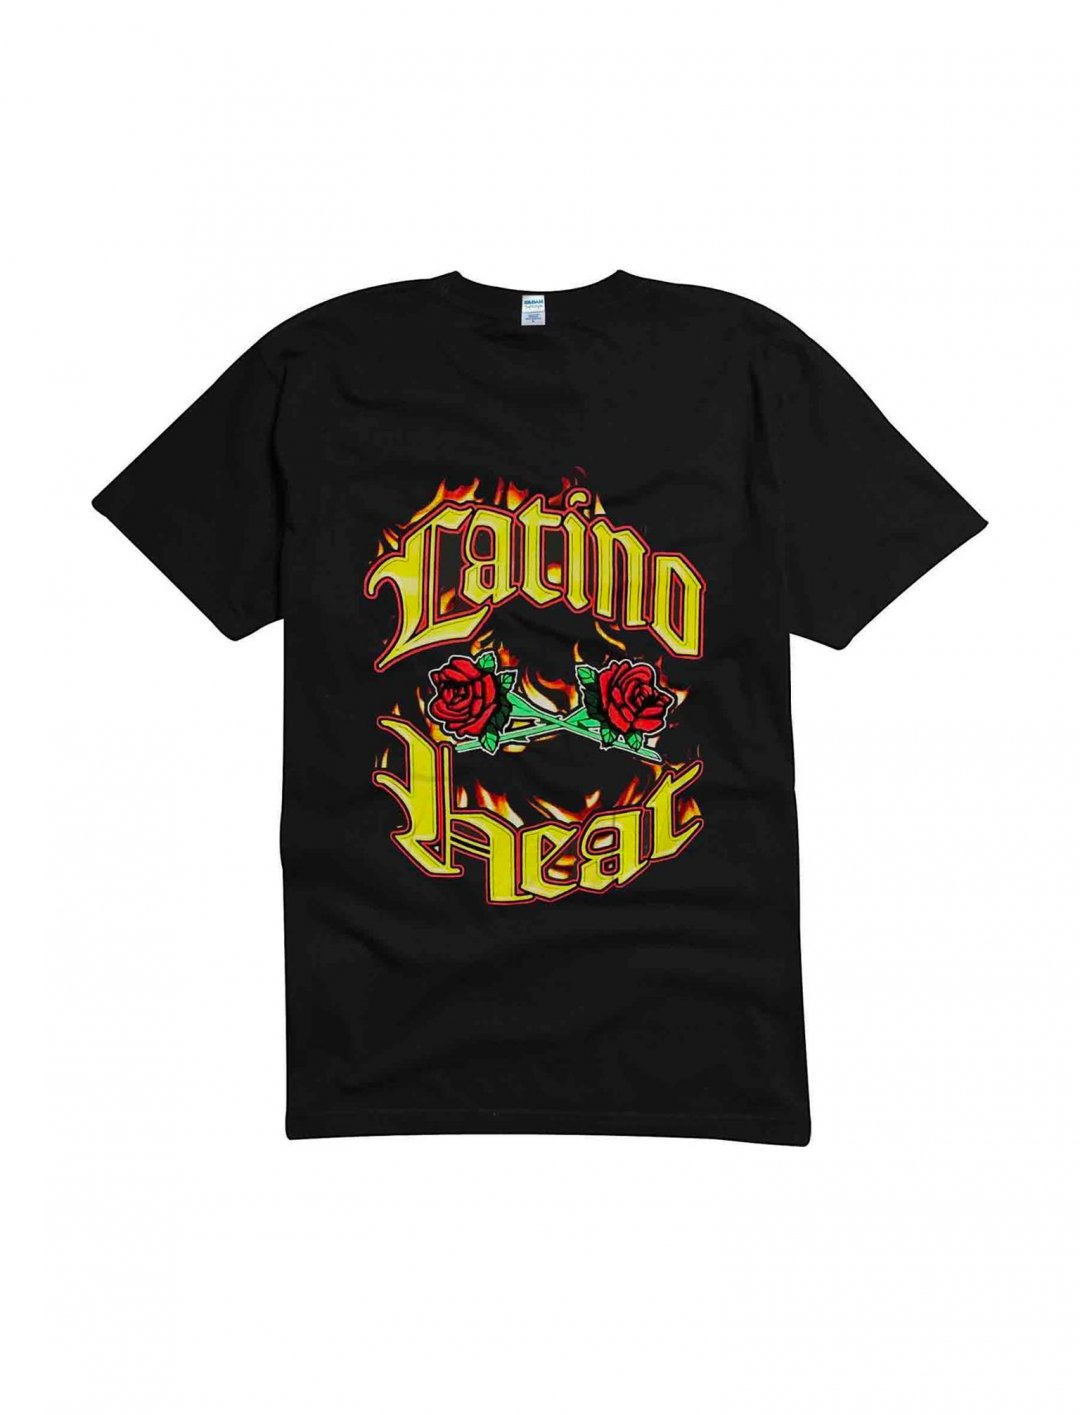 "'Latino Heat' T-Shirt {""id"":5,""product_section_id"":1,""name"":""Clothing"",""order"":5} Eddie Guerrero"